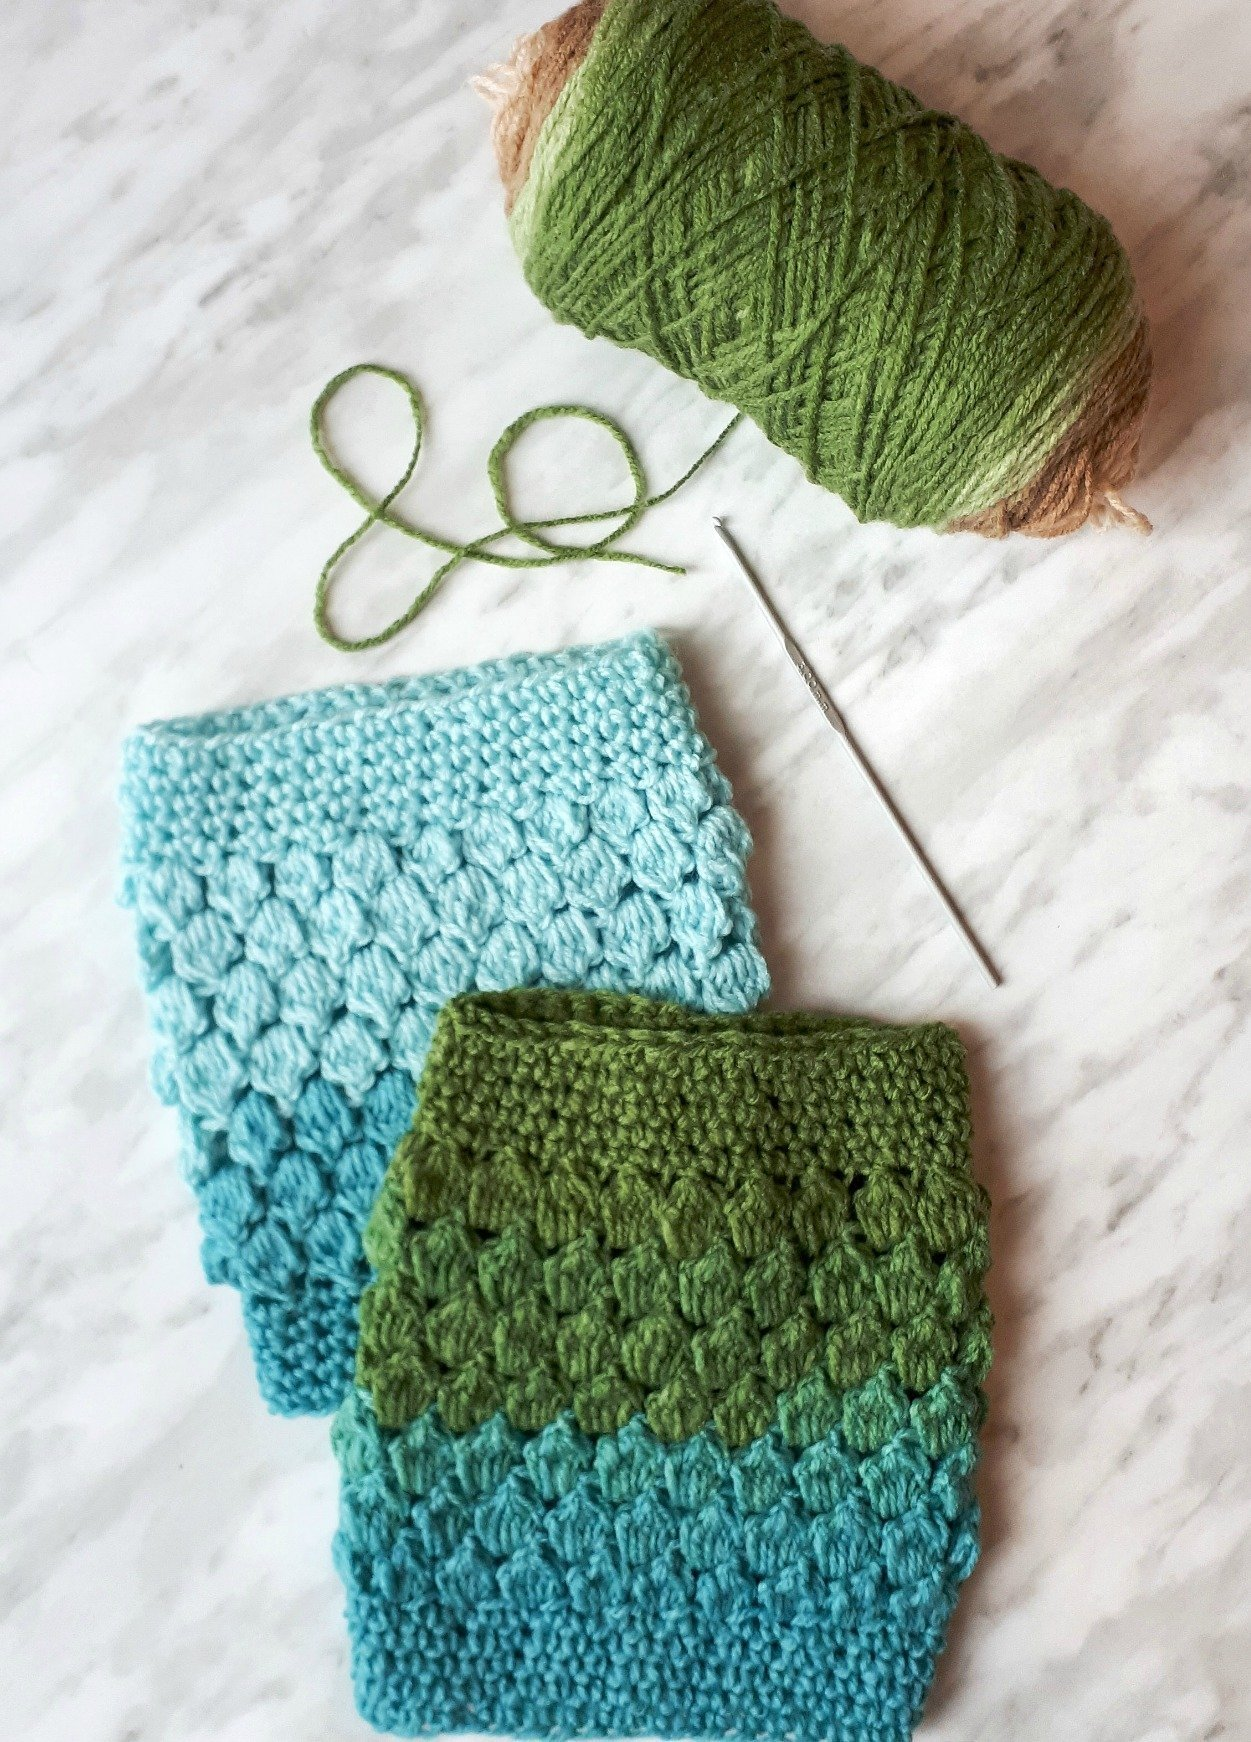 Free DIY tutorial for cute crochet ankle warmers. Stay warm this winter with this cute & quick diy crochet project!